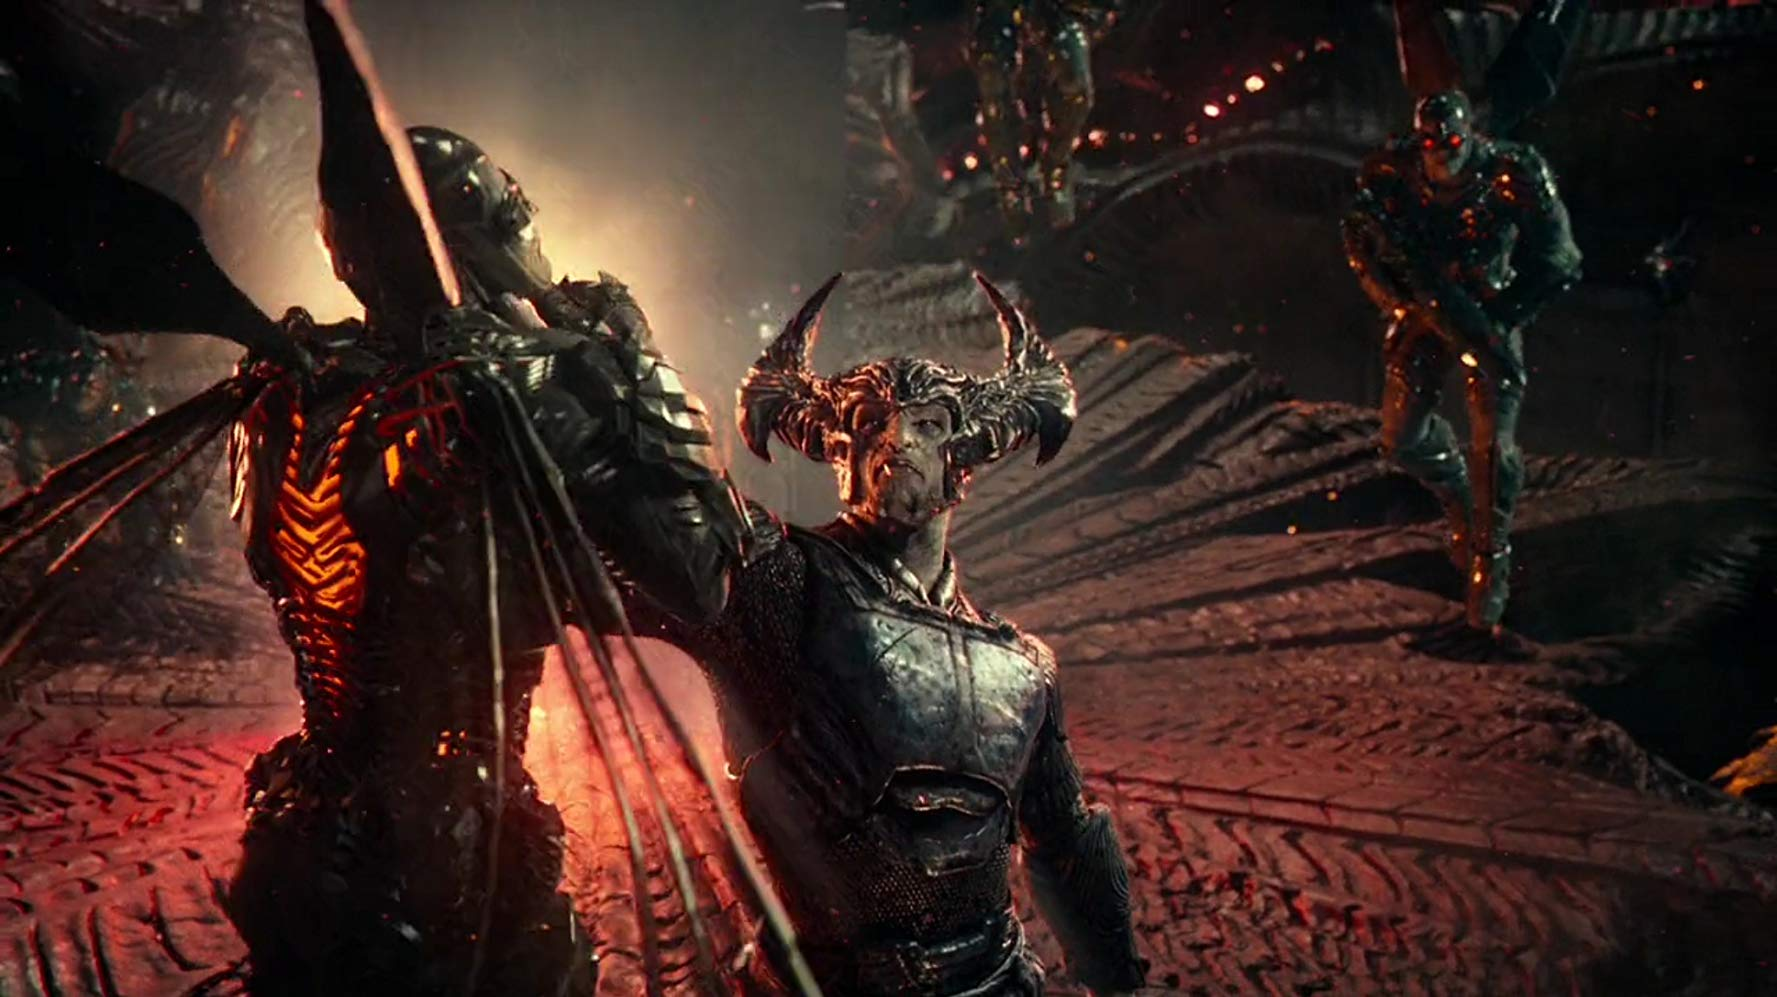 Steppenwolf n Justice League (2017)